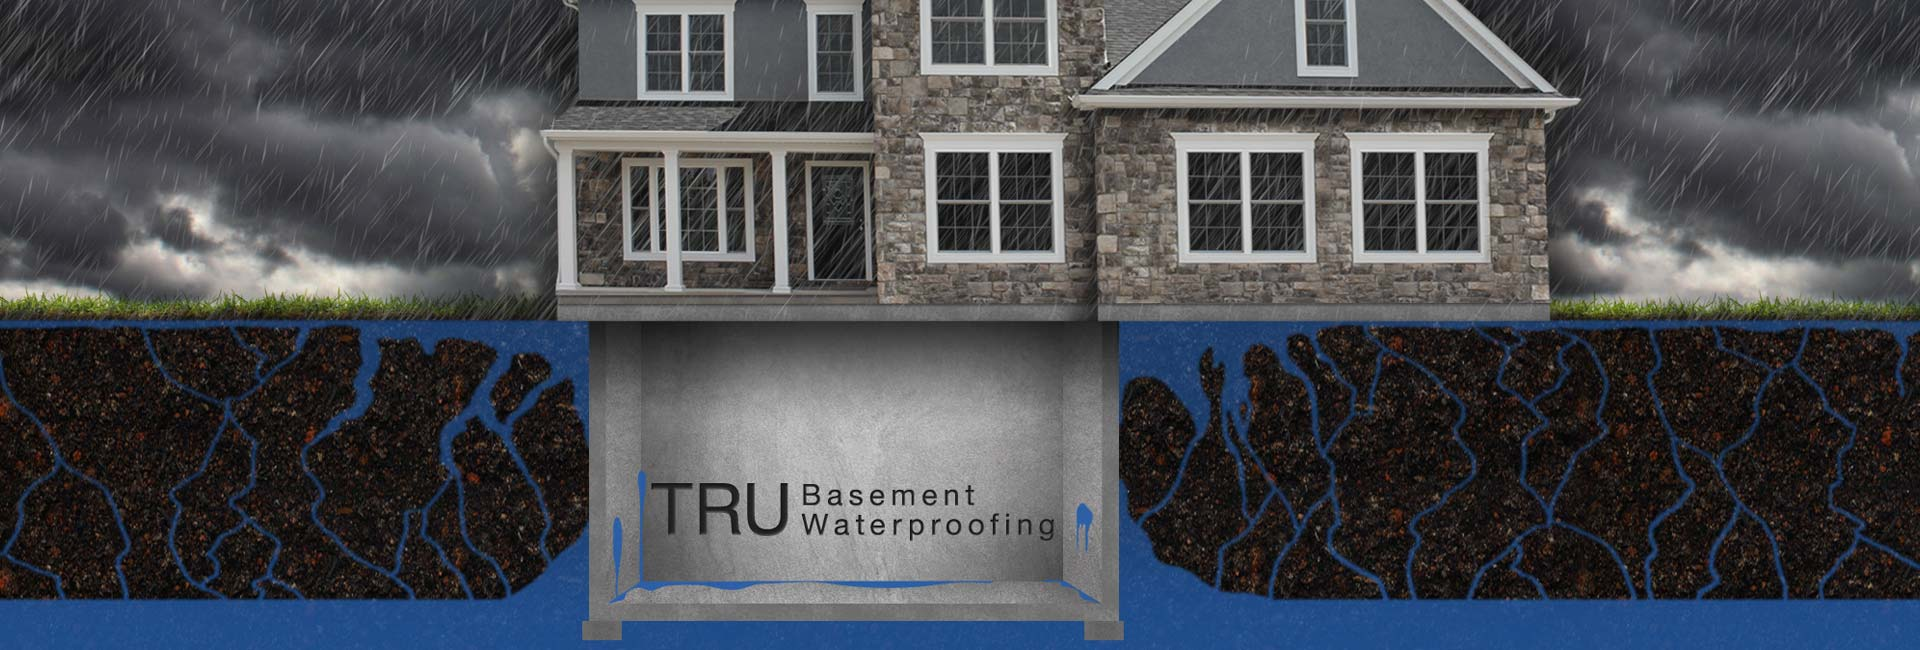 Tru Basement Waterproofing and Foundation Repair